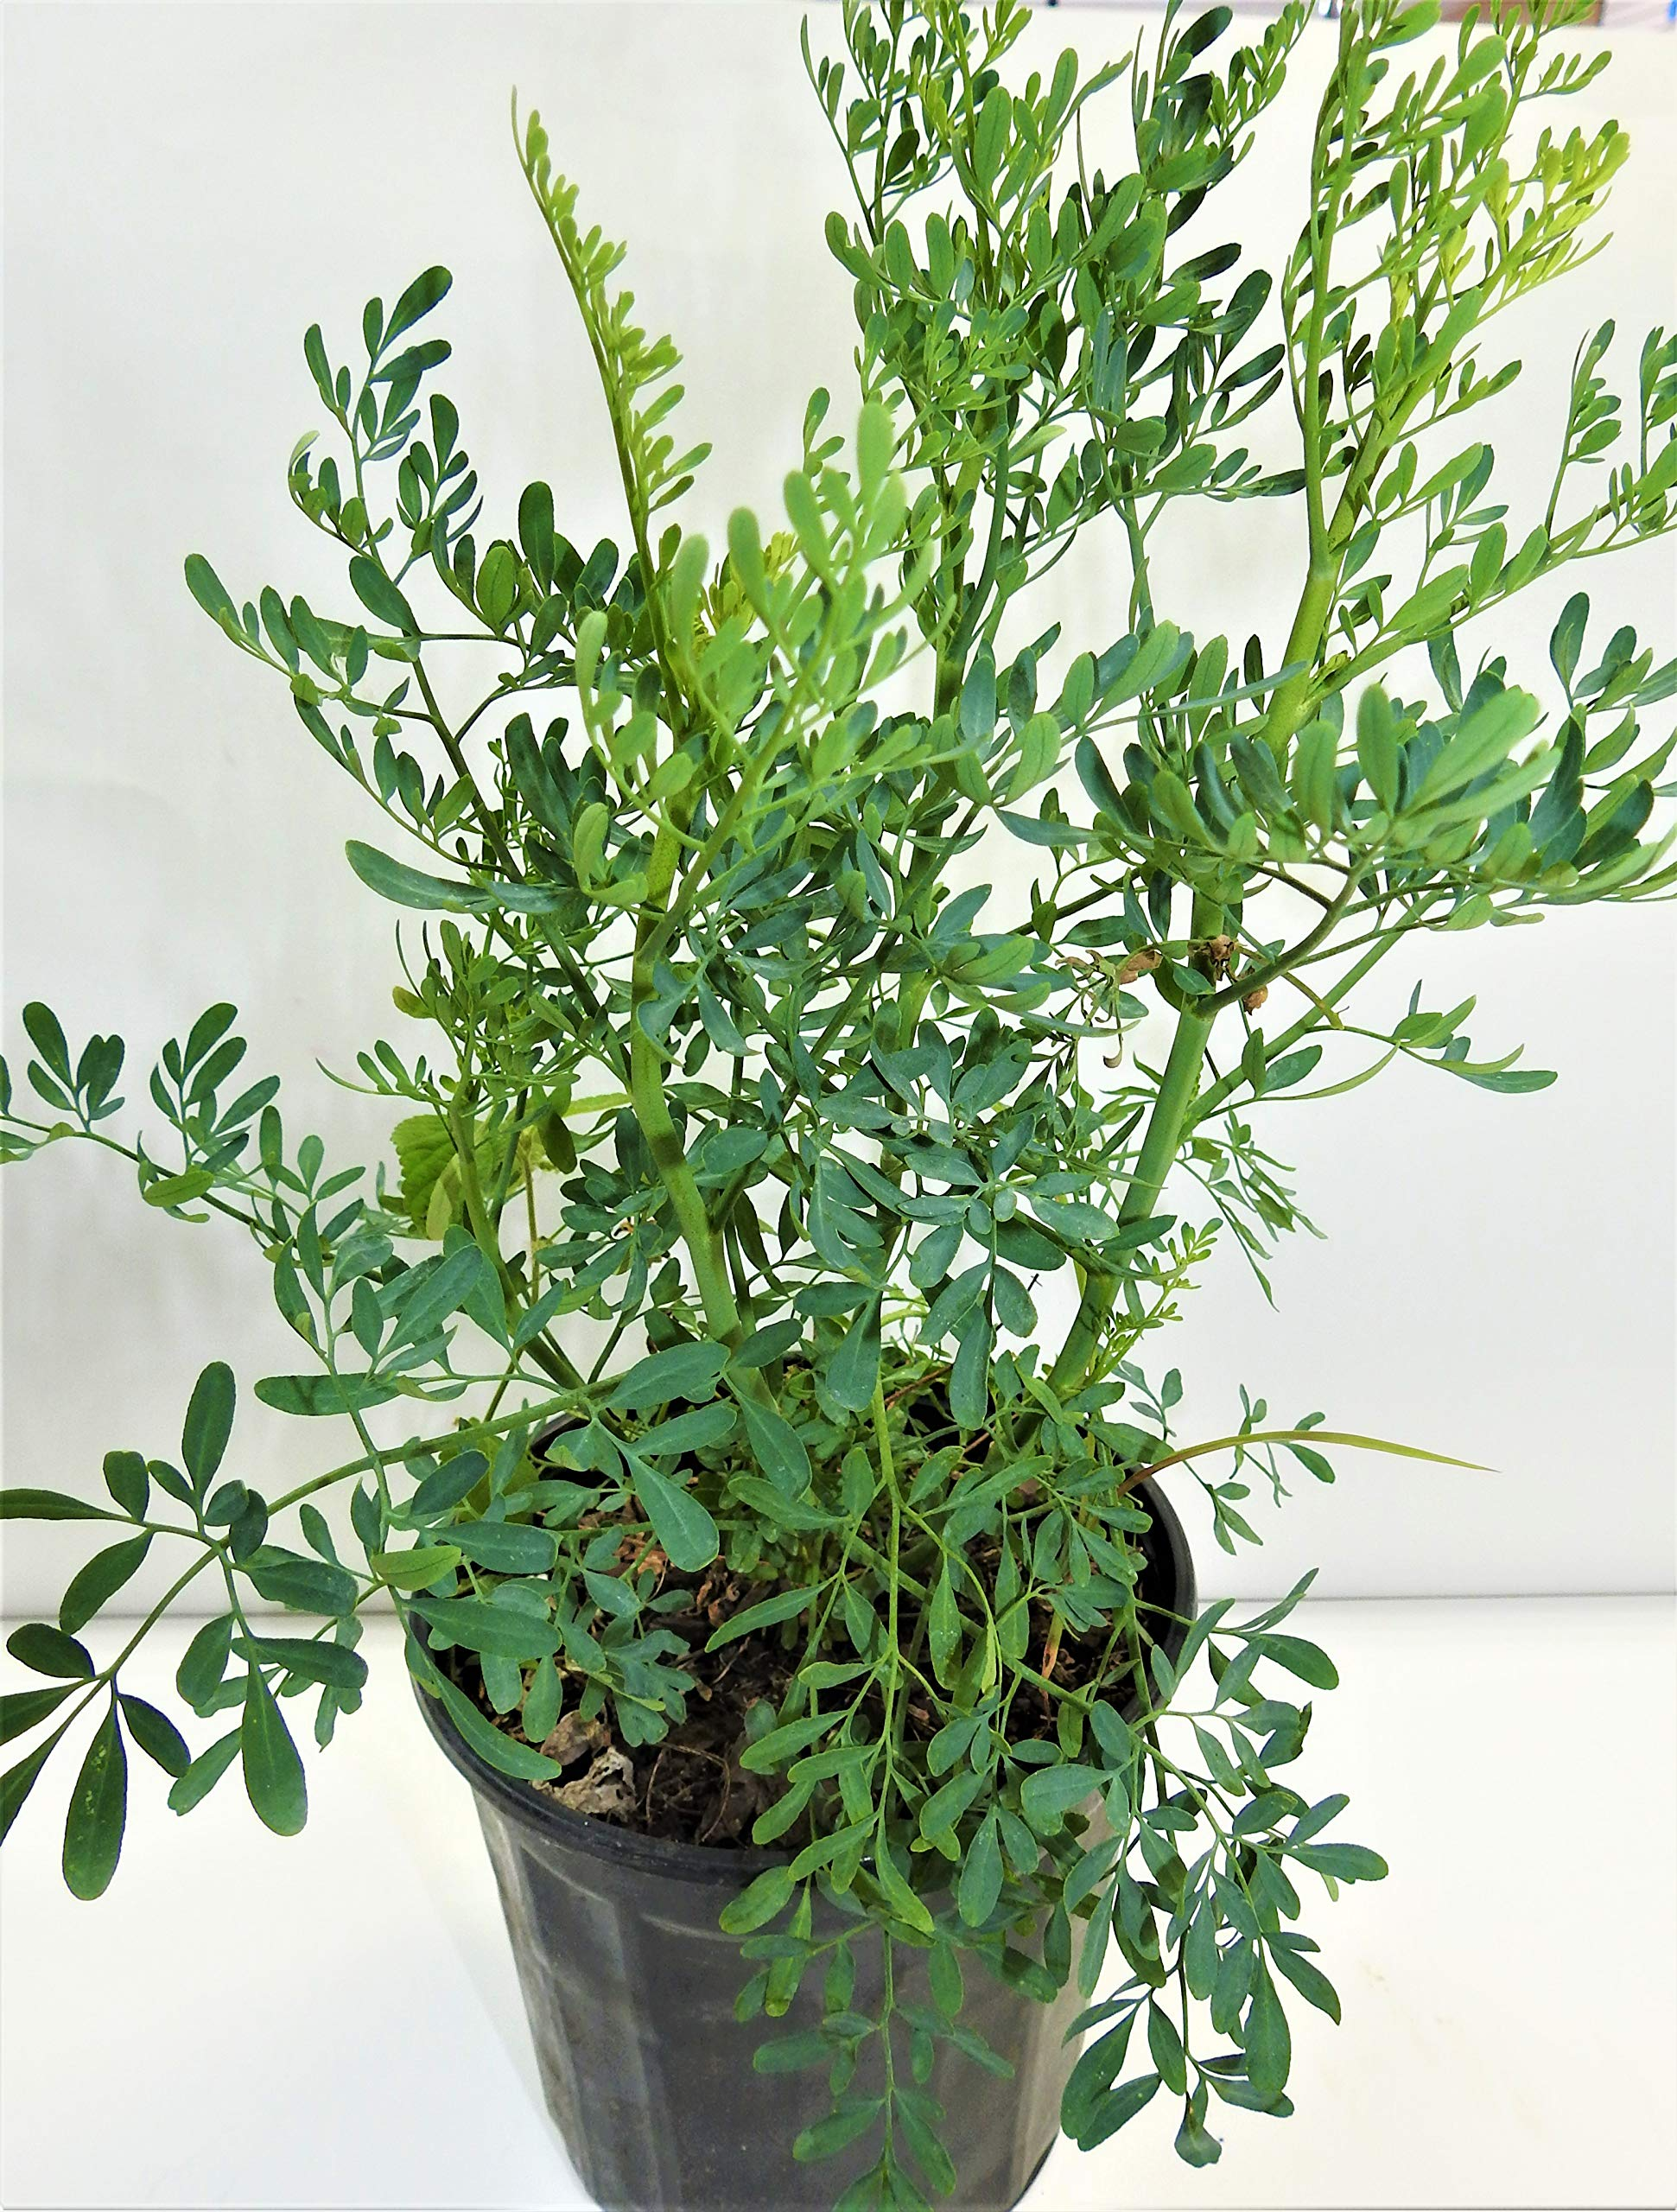 ruda/rue Full Plant with Root by botanica las americas